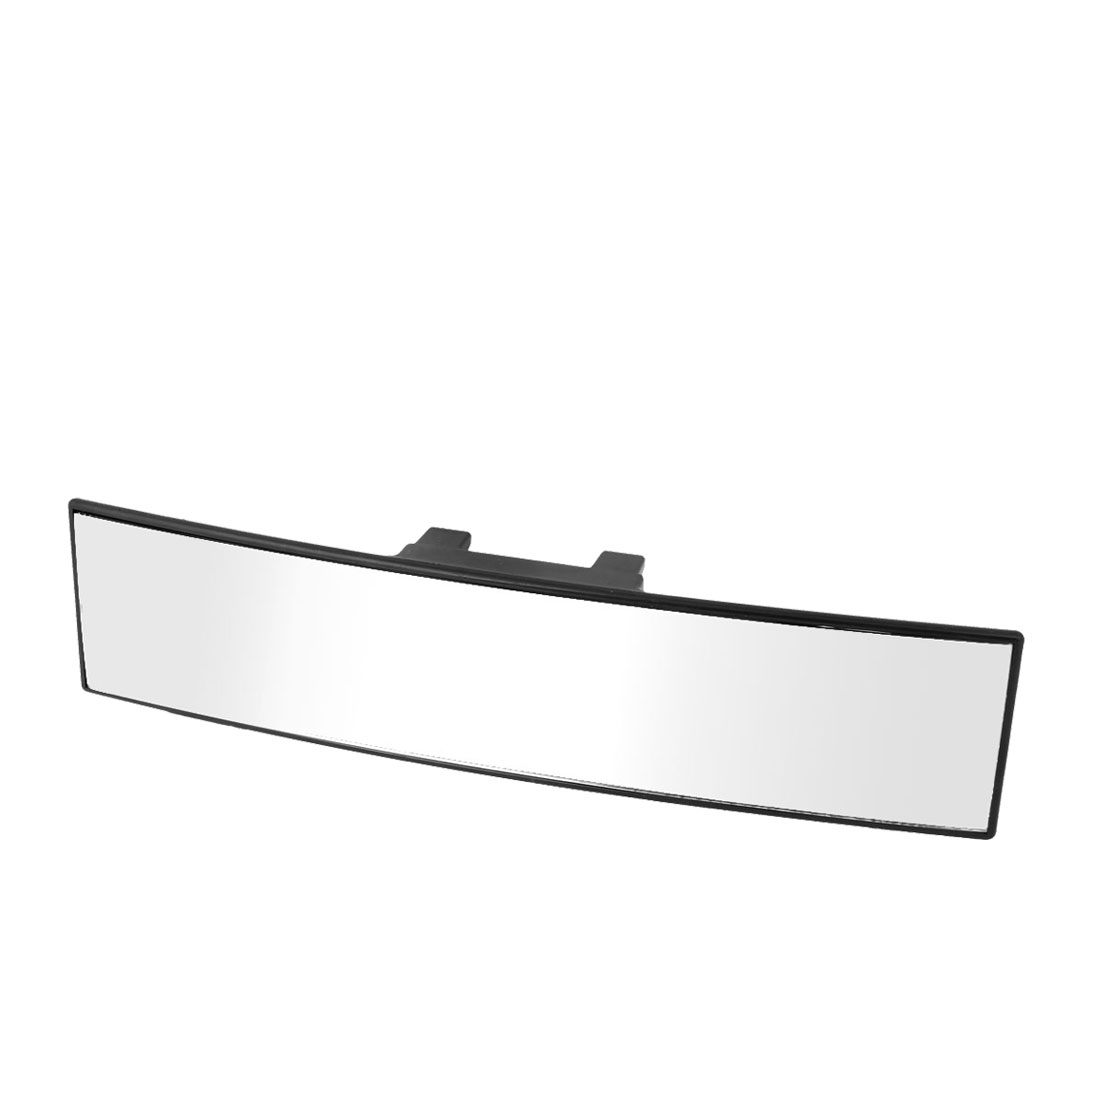 Auto-Interior-Black-Frame-Wide-Angle-Curved-Rearview-Mirror-300-x-80mm